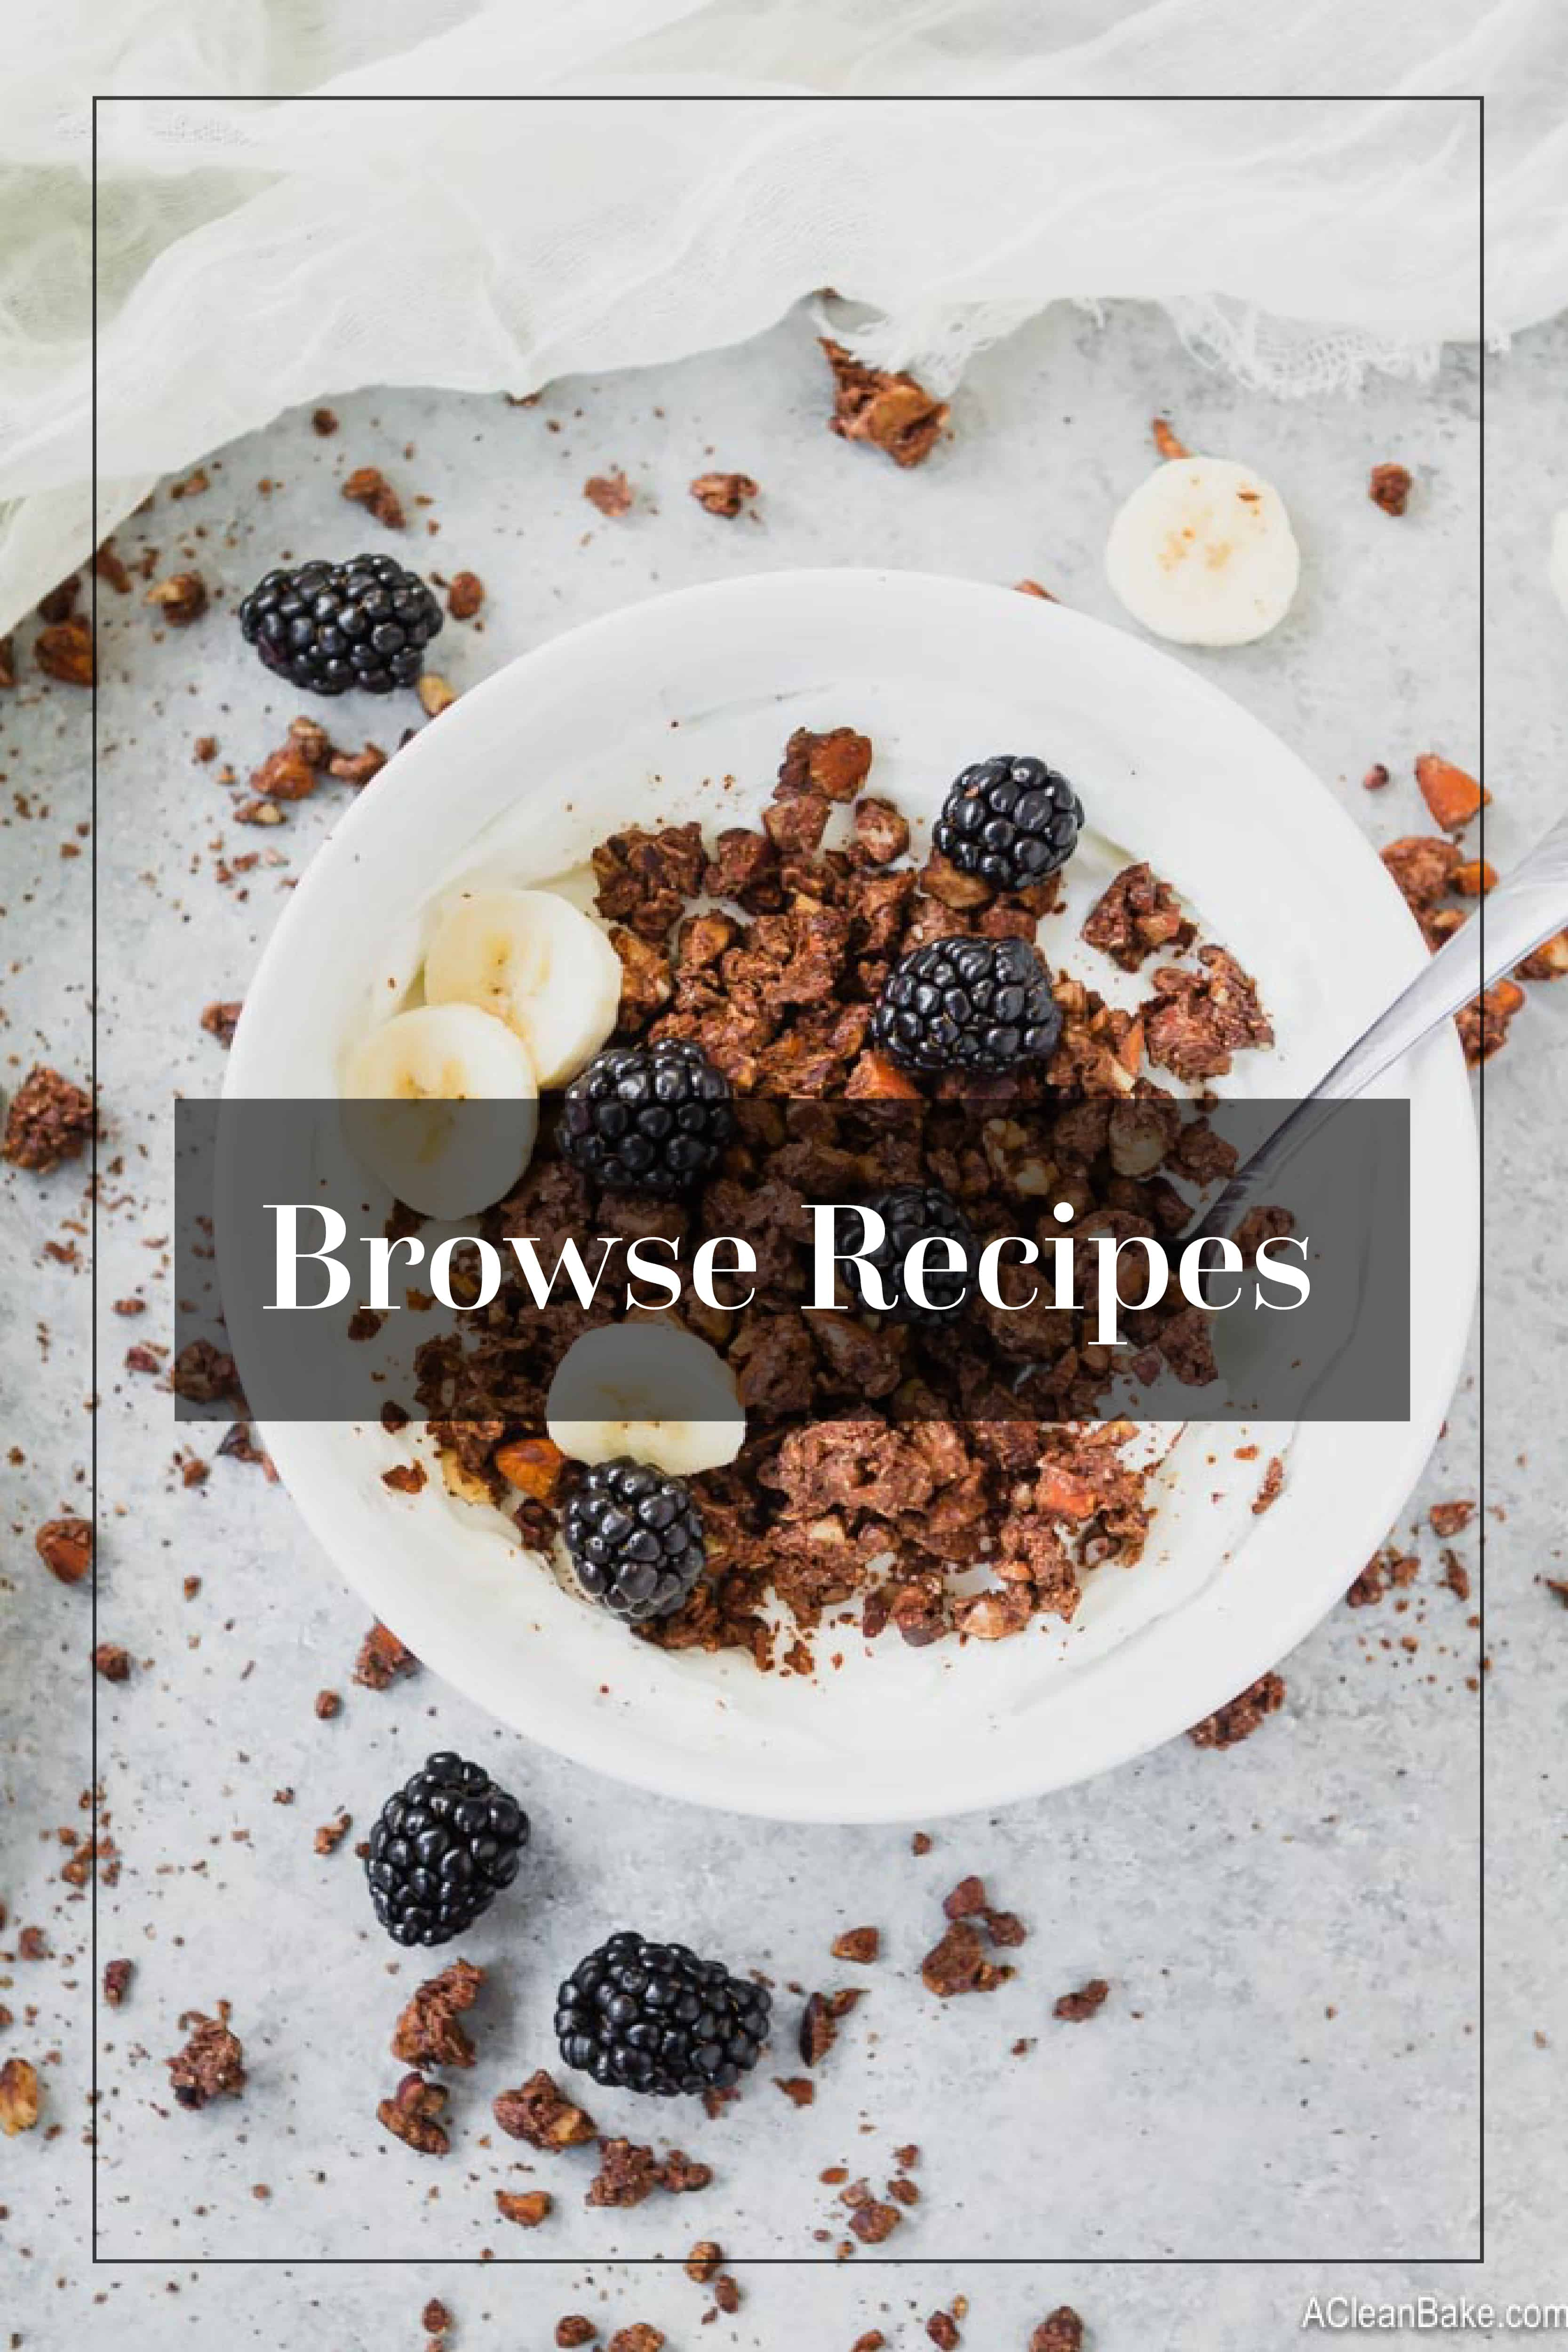 Gluten Free Paleo Recipes For Enjoyable Healthy Eating A Clean Bake